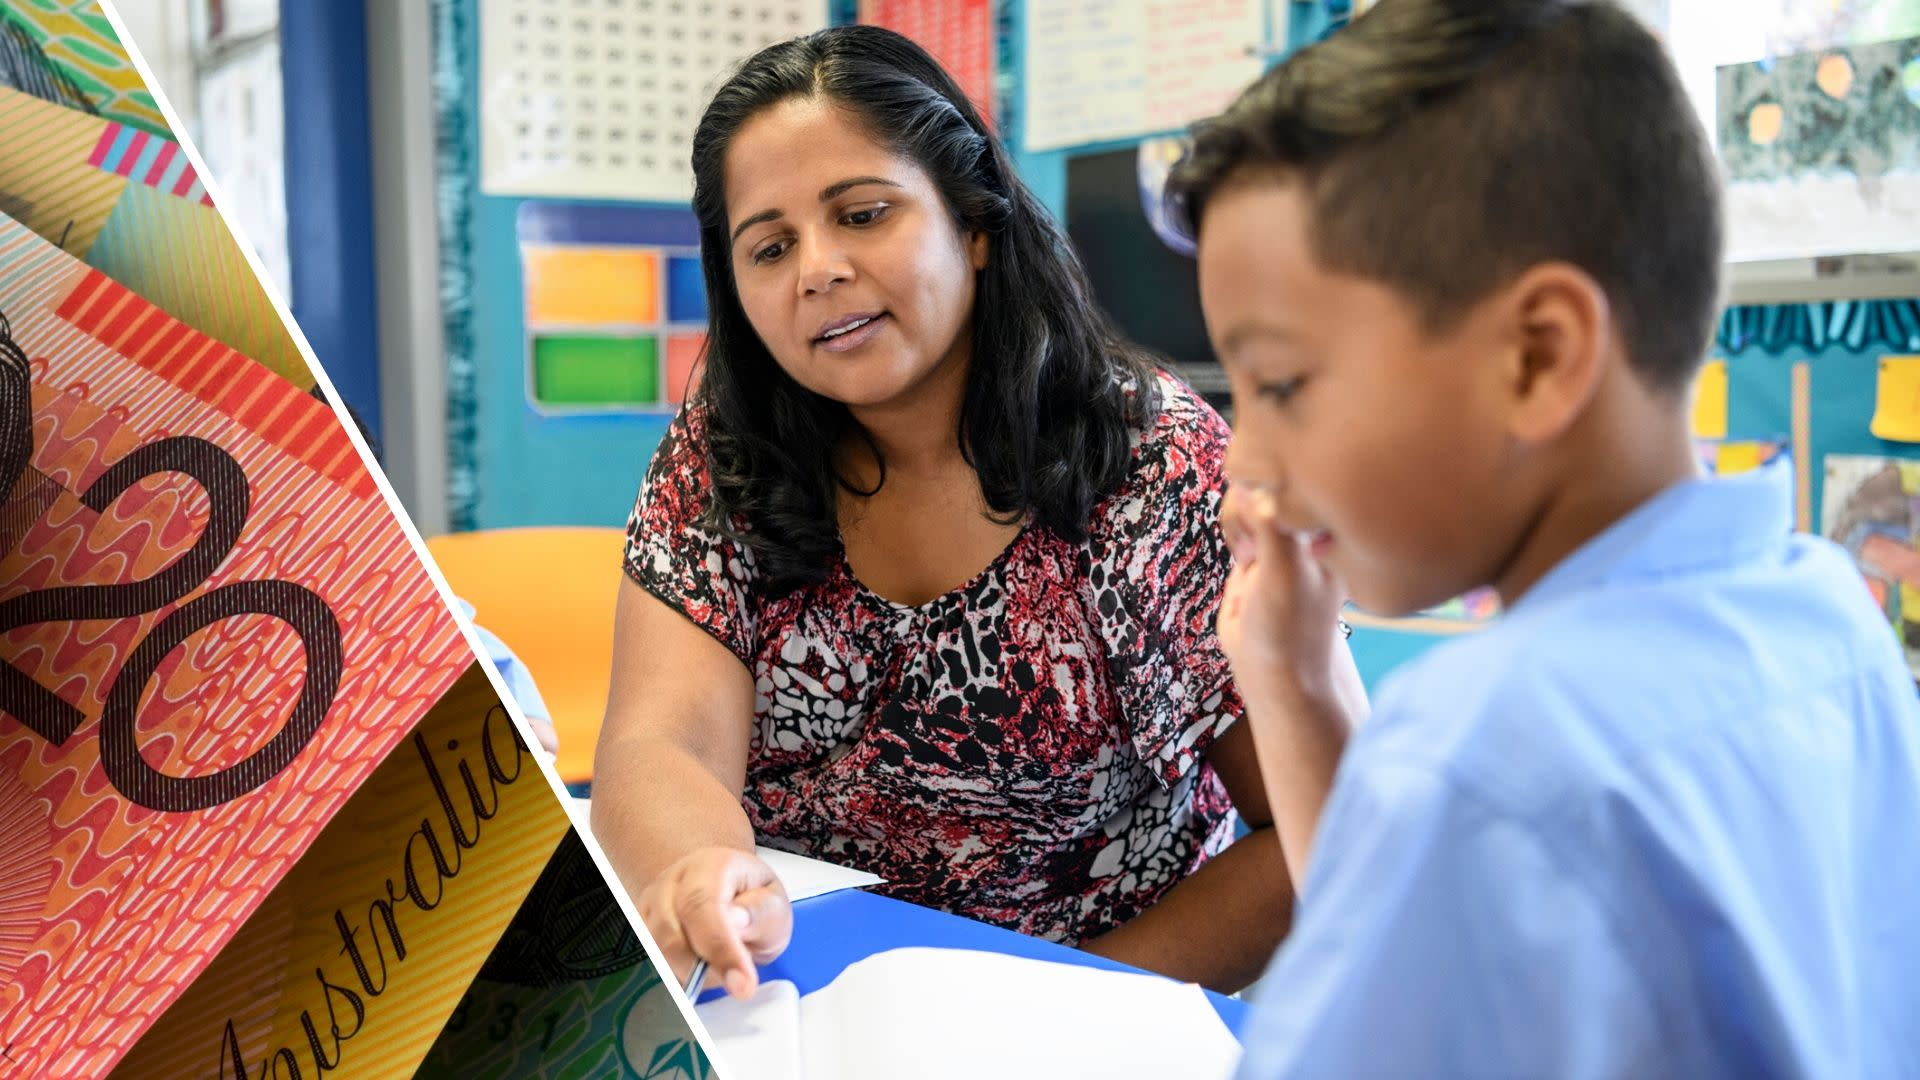 New proposal to pay top teachers $180k